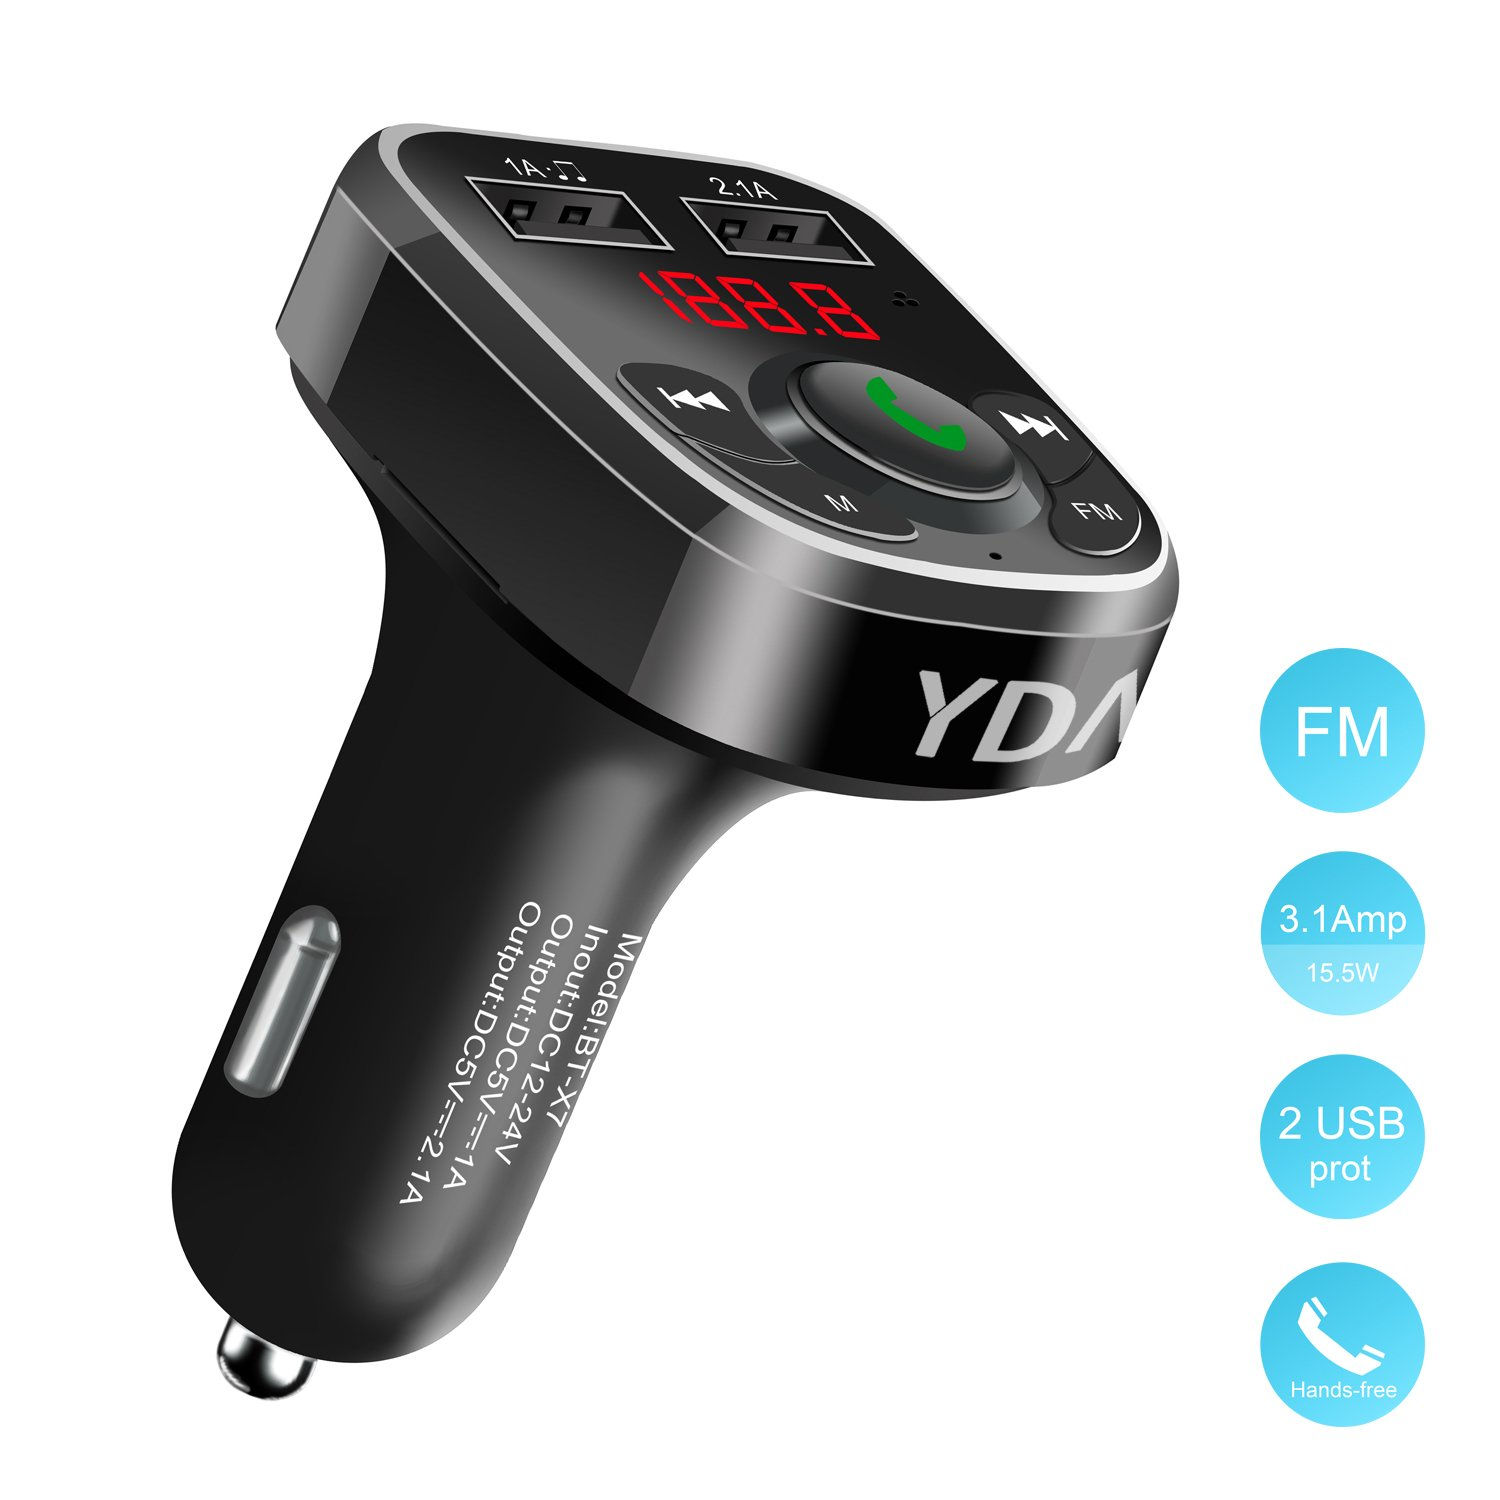 Fm Transmitterwireless Bluetooth Transmitter Circuit With High Frequency Stability Free Electronic Receiver Radio Adapter Car Kit Handsfree Callingsupport Voltage Detectionmp3 Player